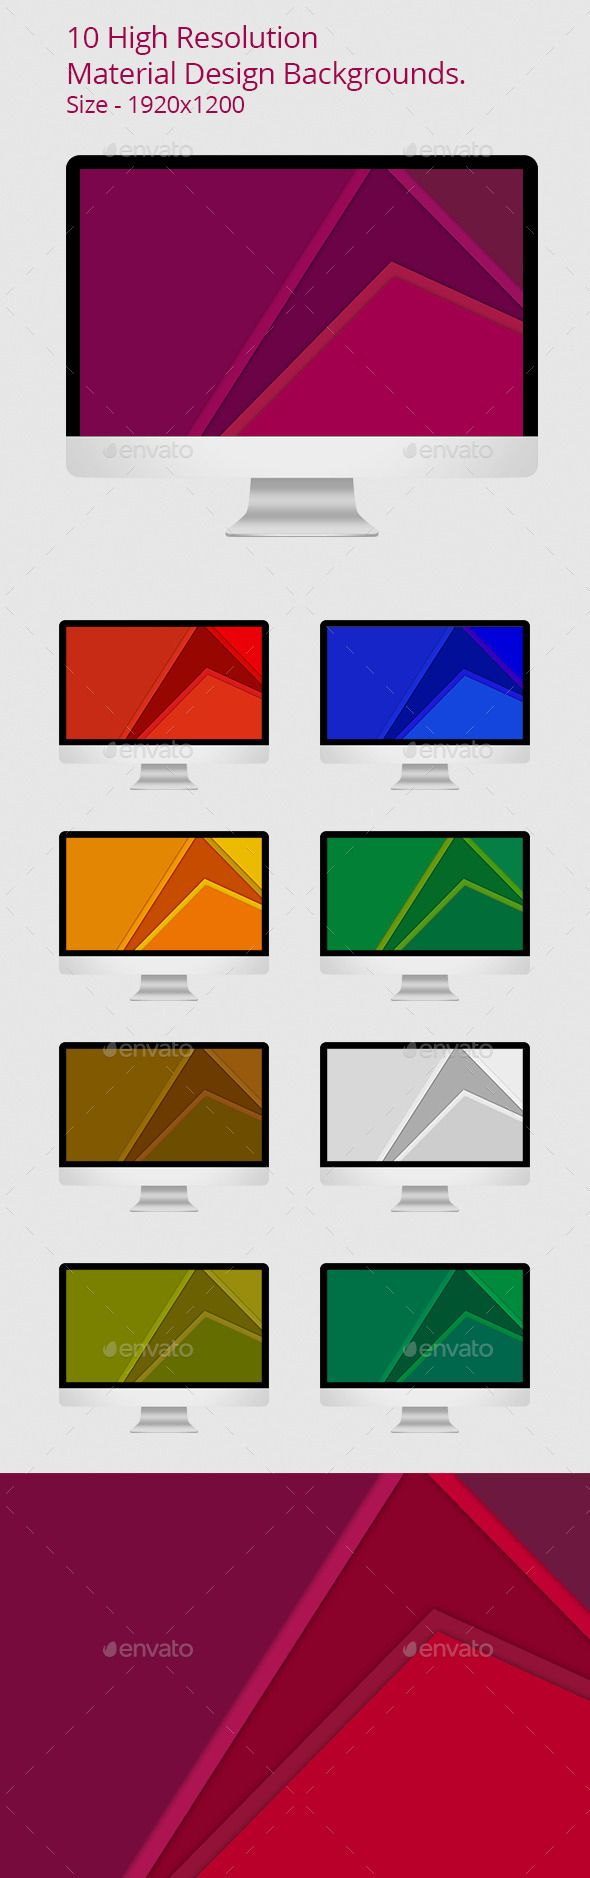 Material Design Backgrounds by design_kd 10 high resolution unique backgrounds inspired by Google Material Design. Suites for web background, desktop background, presentat